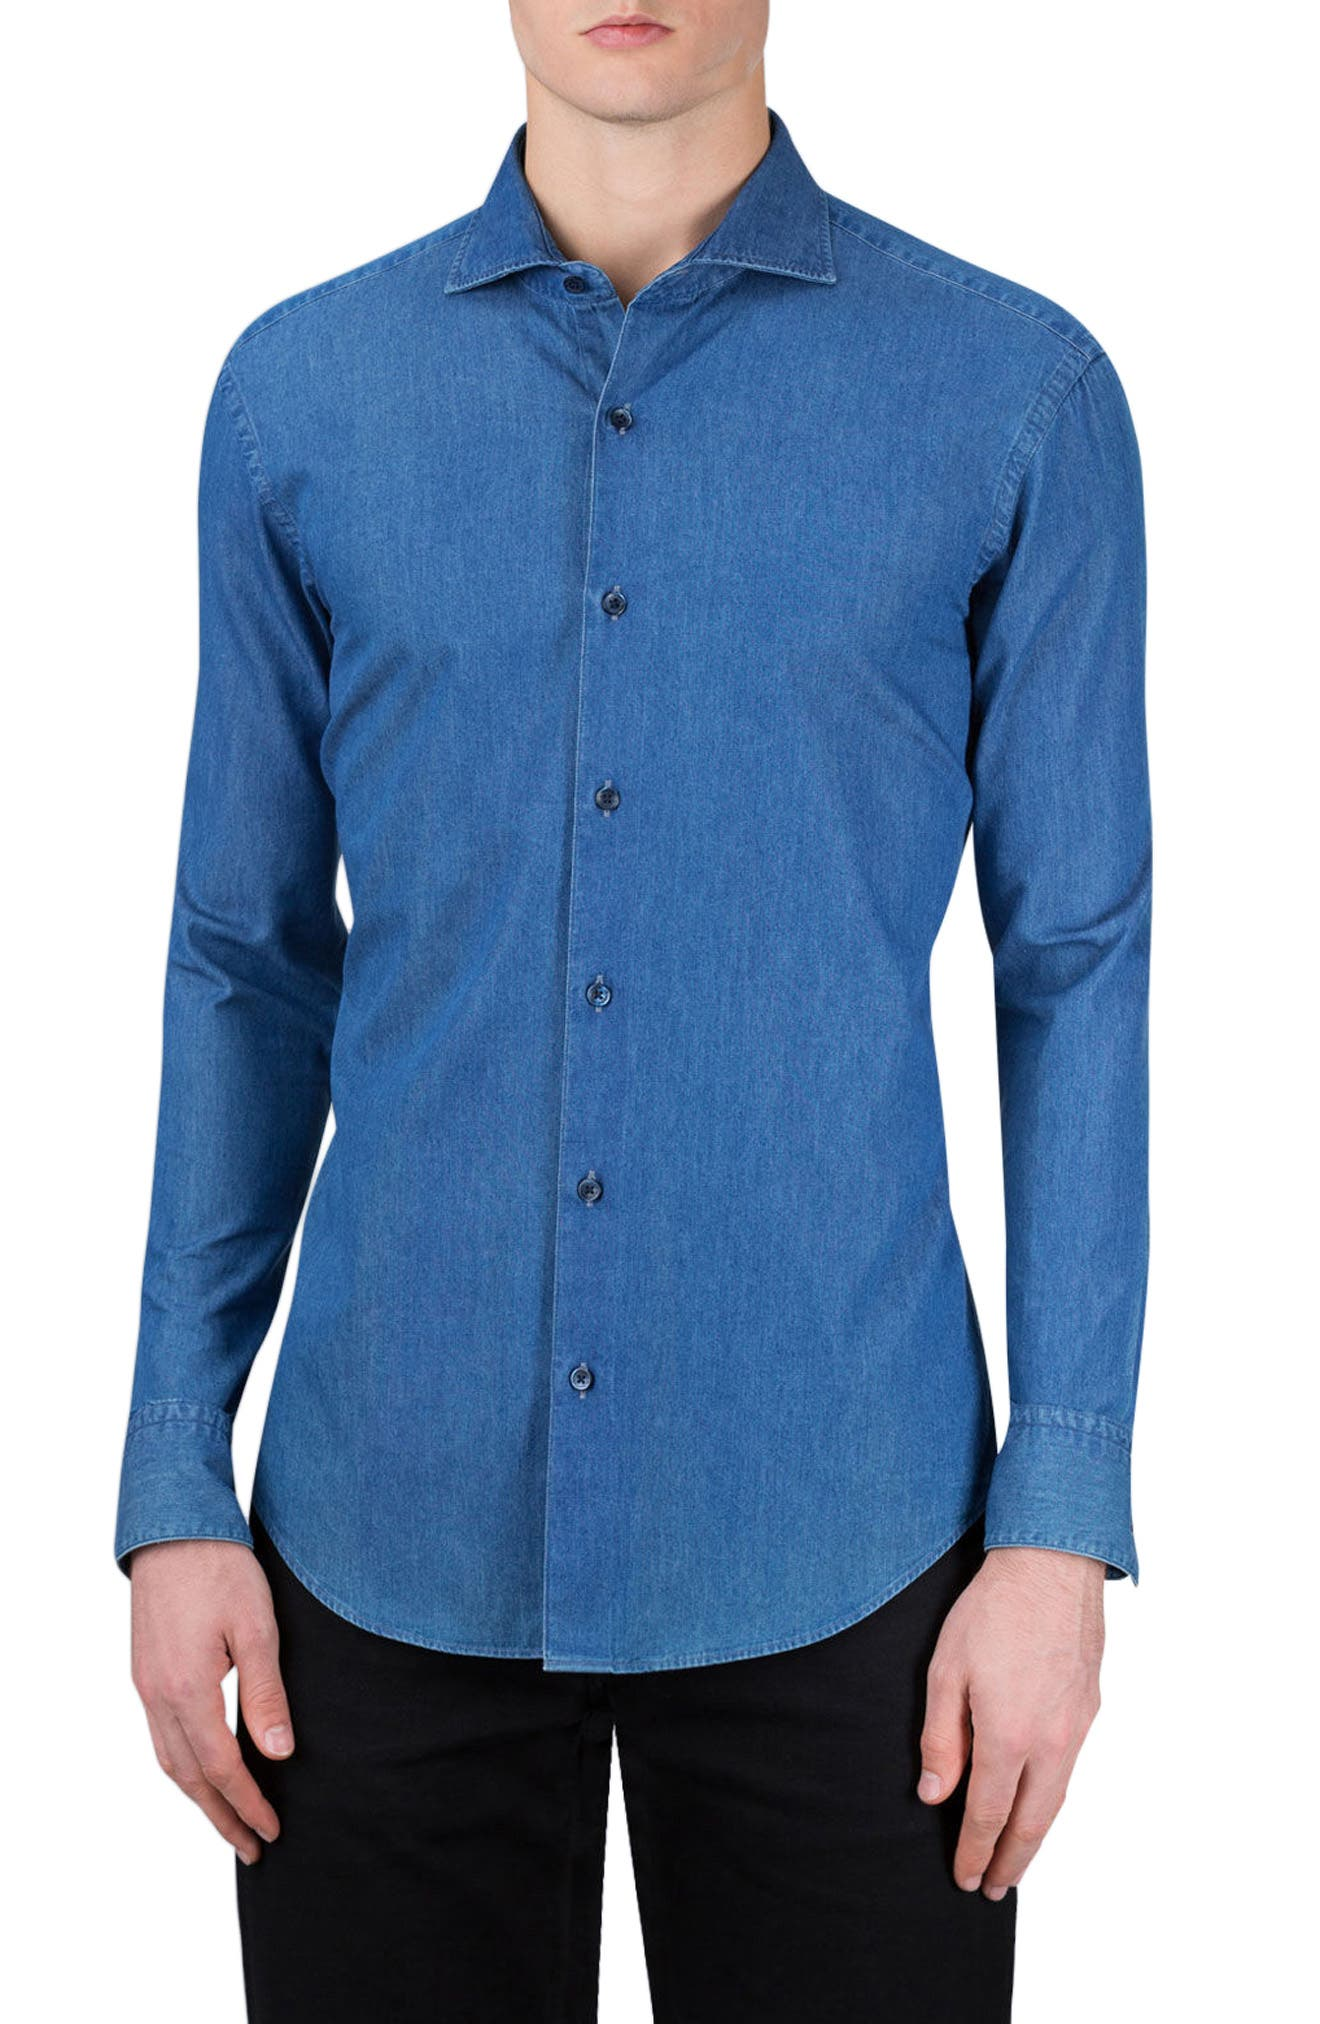 Alternate Image 1 Selected - Bugatchi Classic Fit Chambray Sport Shirt